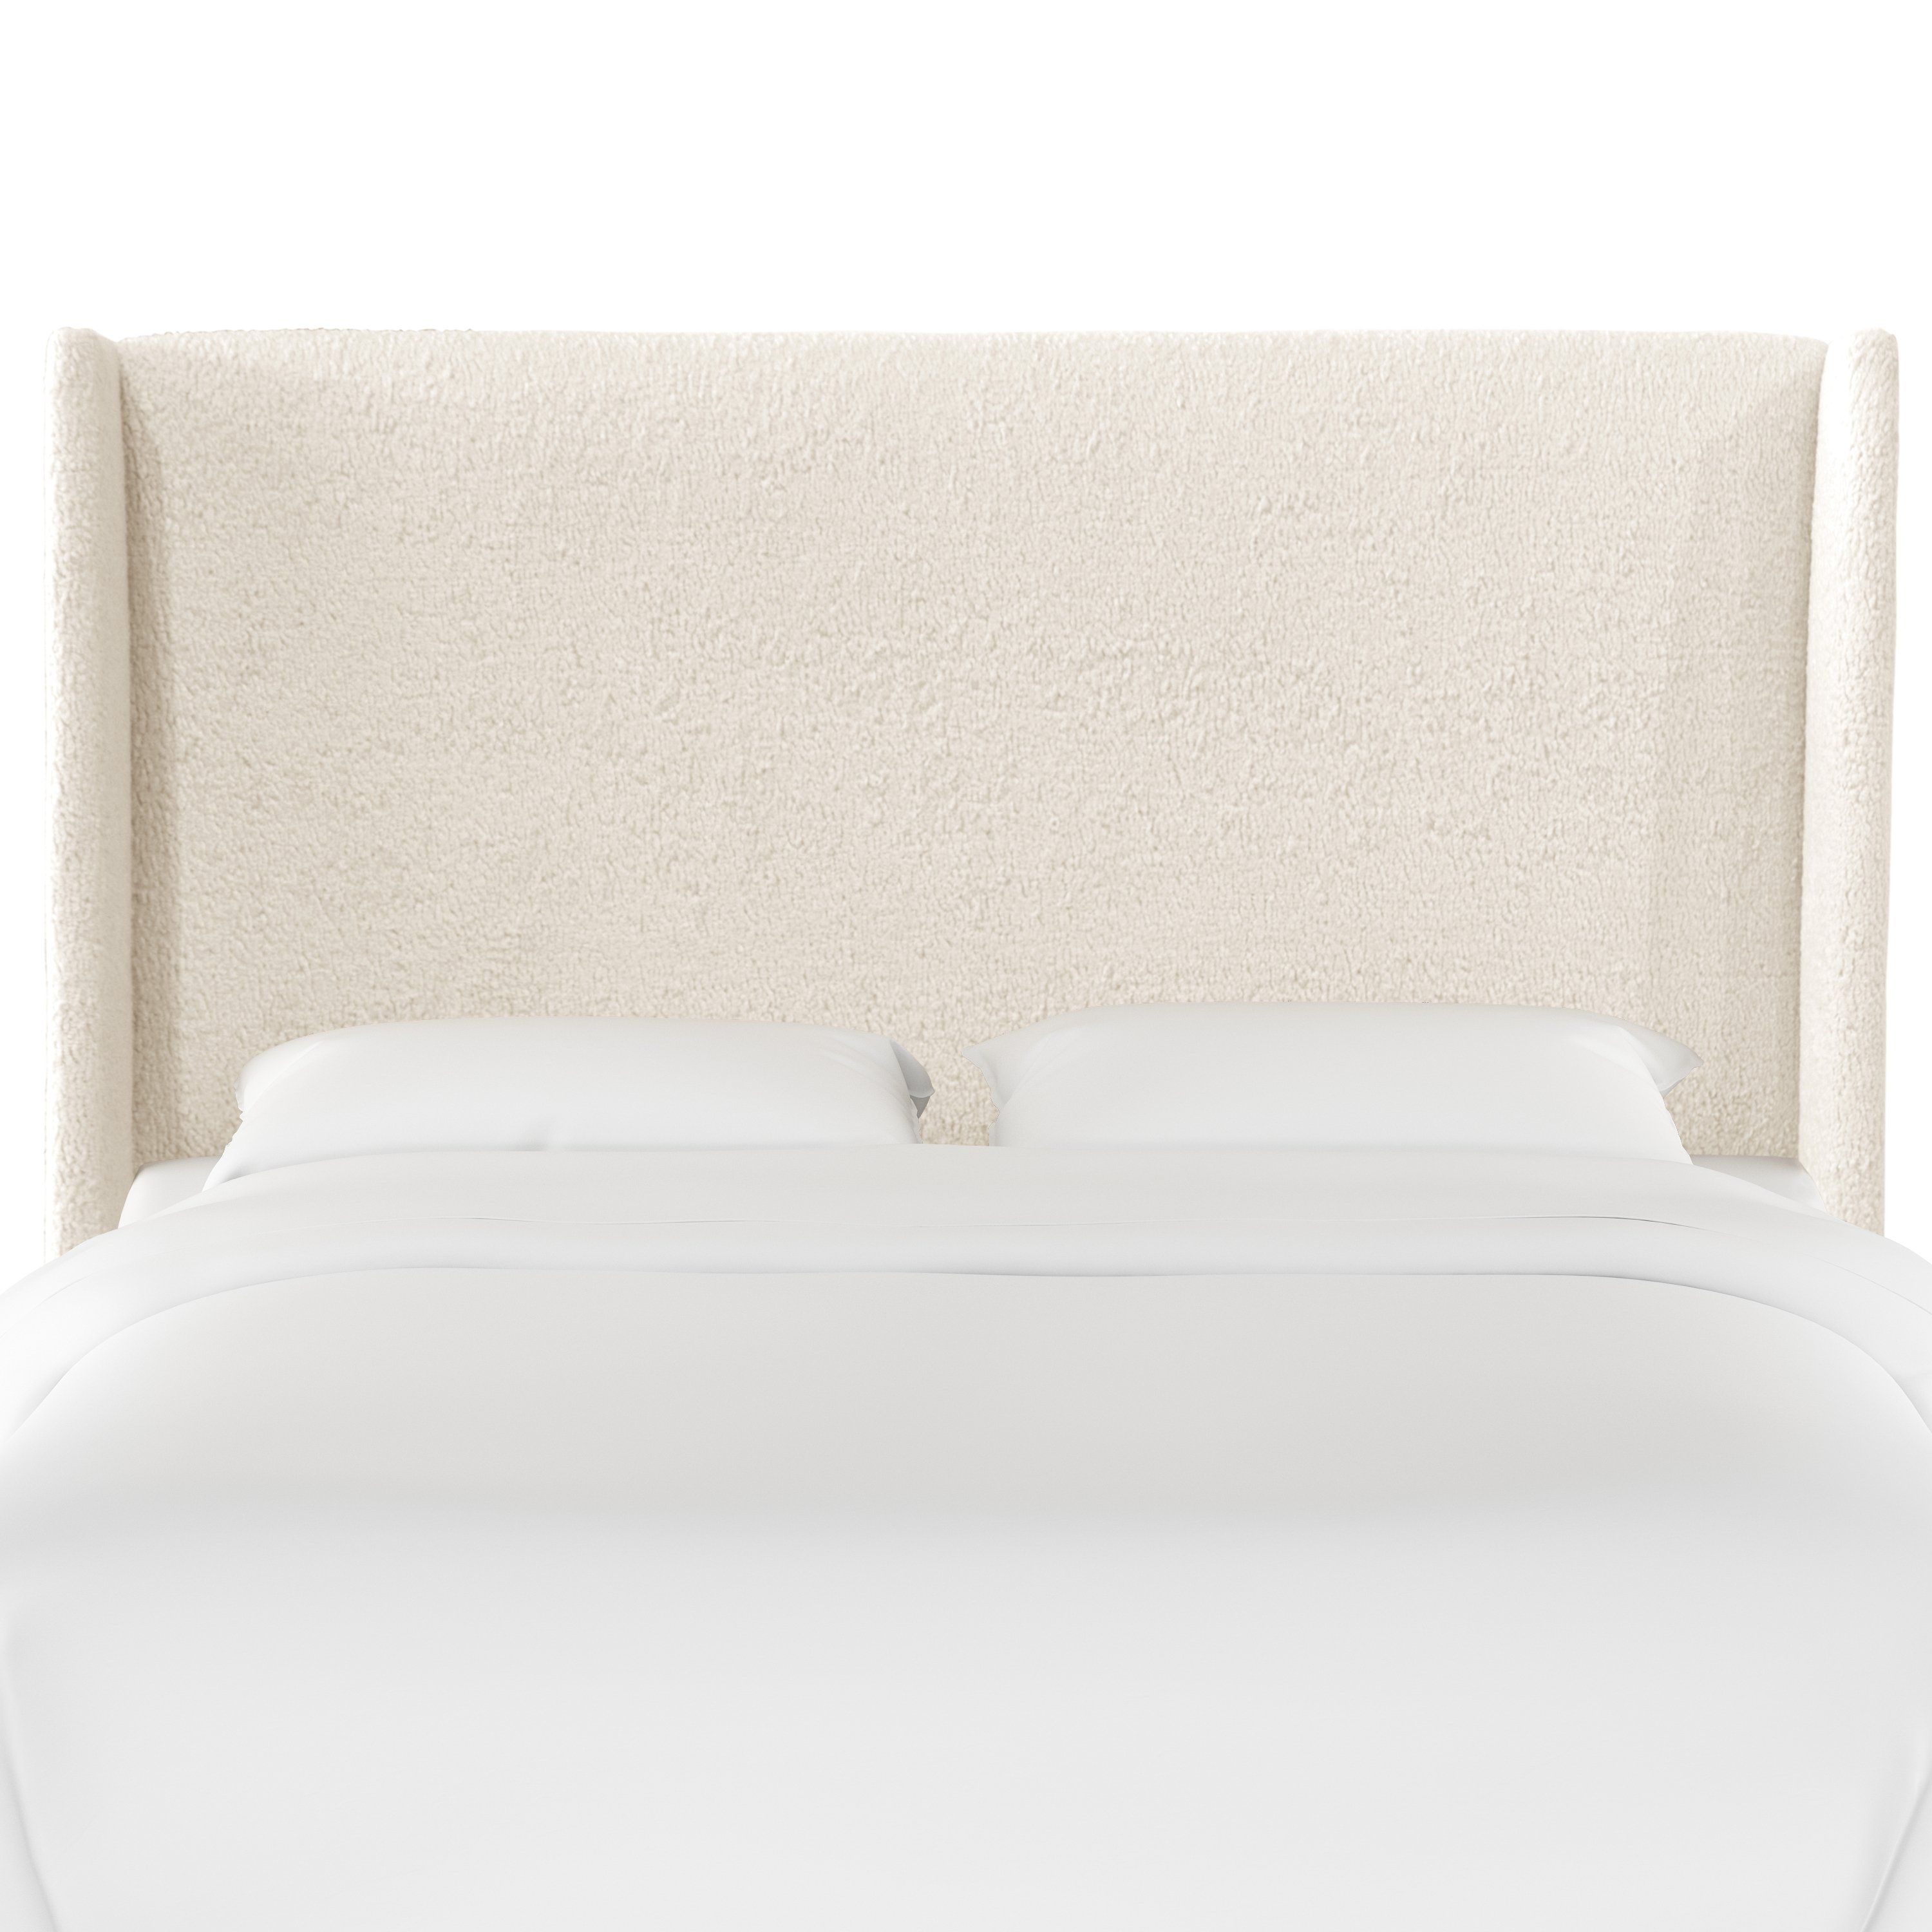 Sheepskin Natural White King Upholstered Headboard In 2020 Home Furnishings Furniture